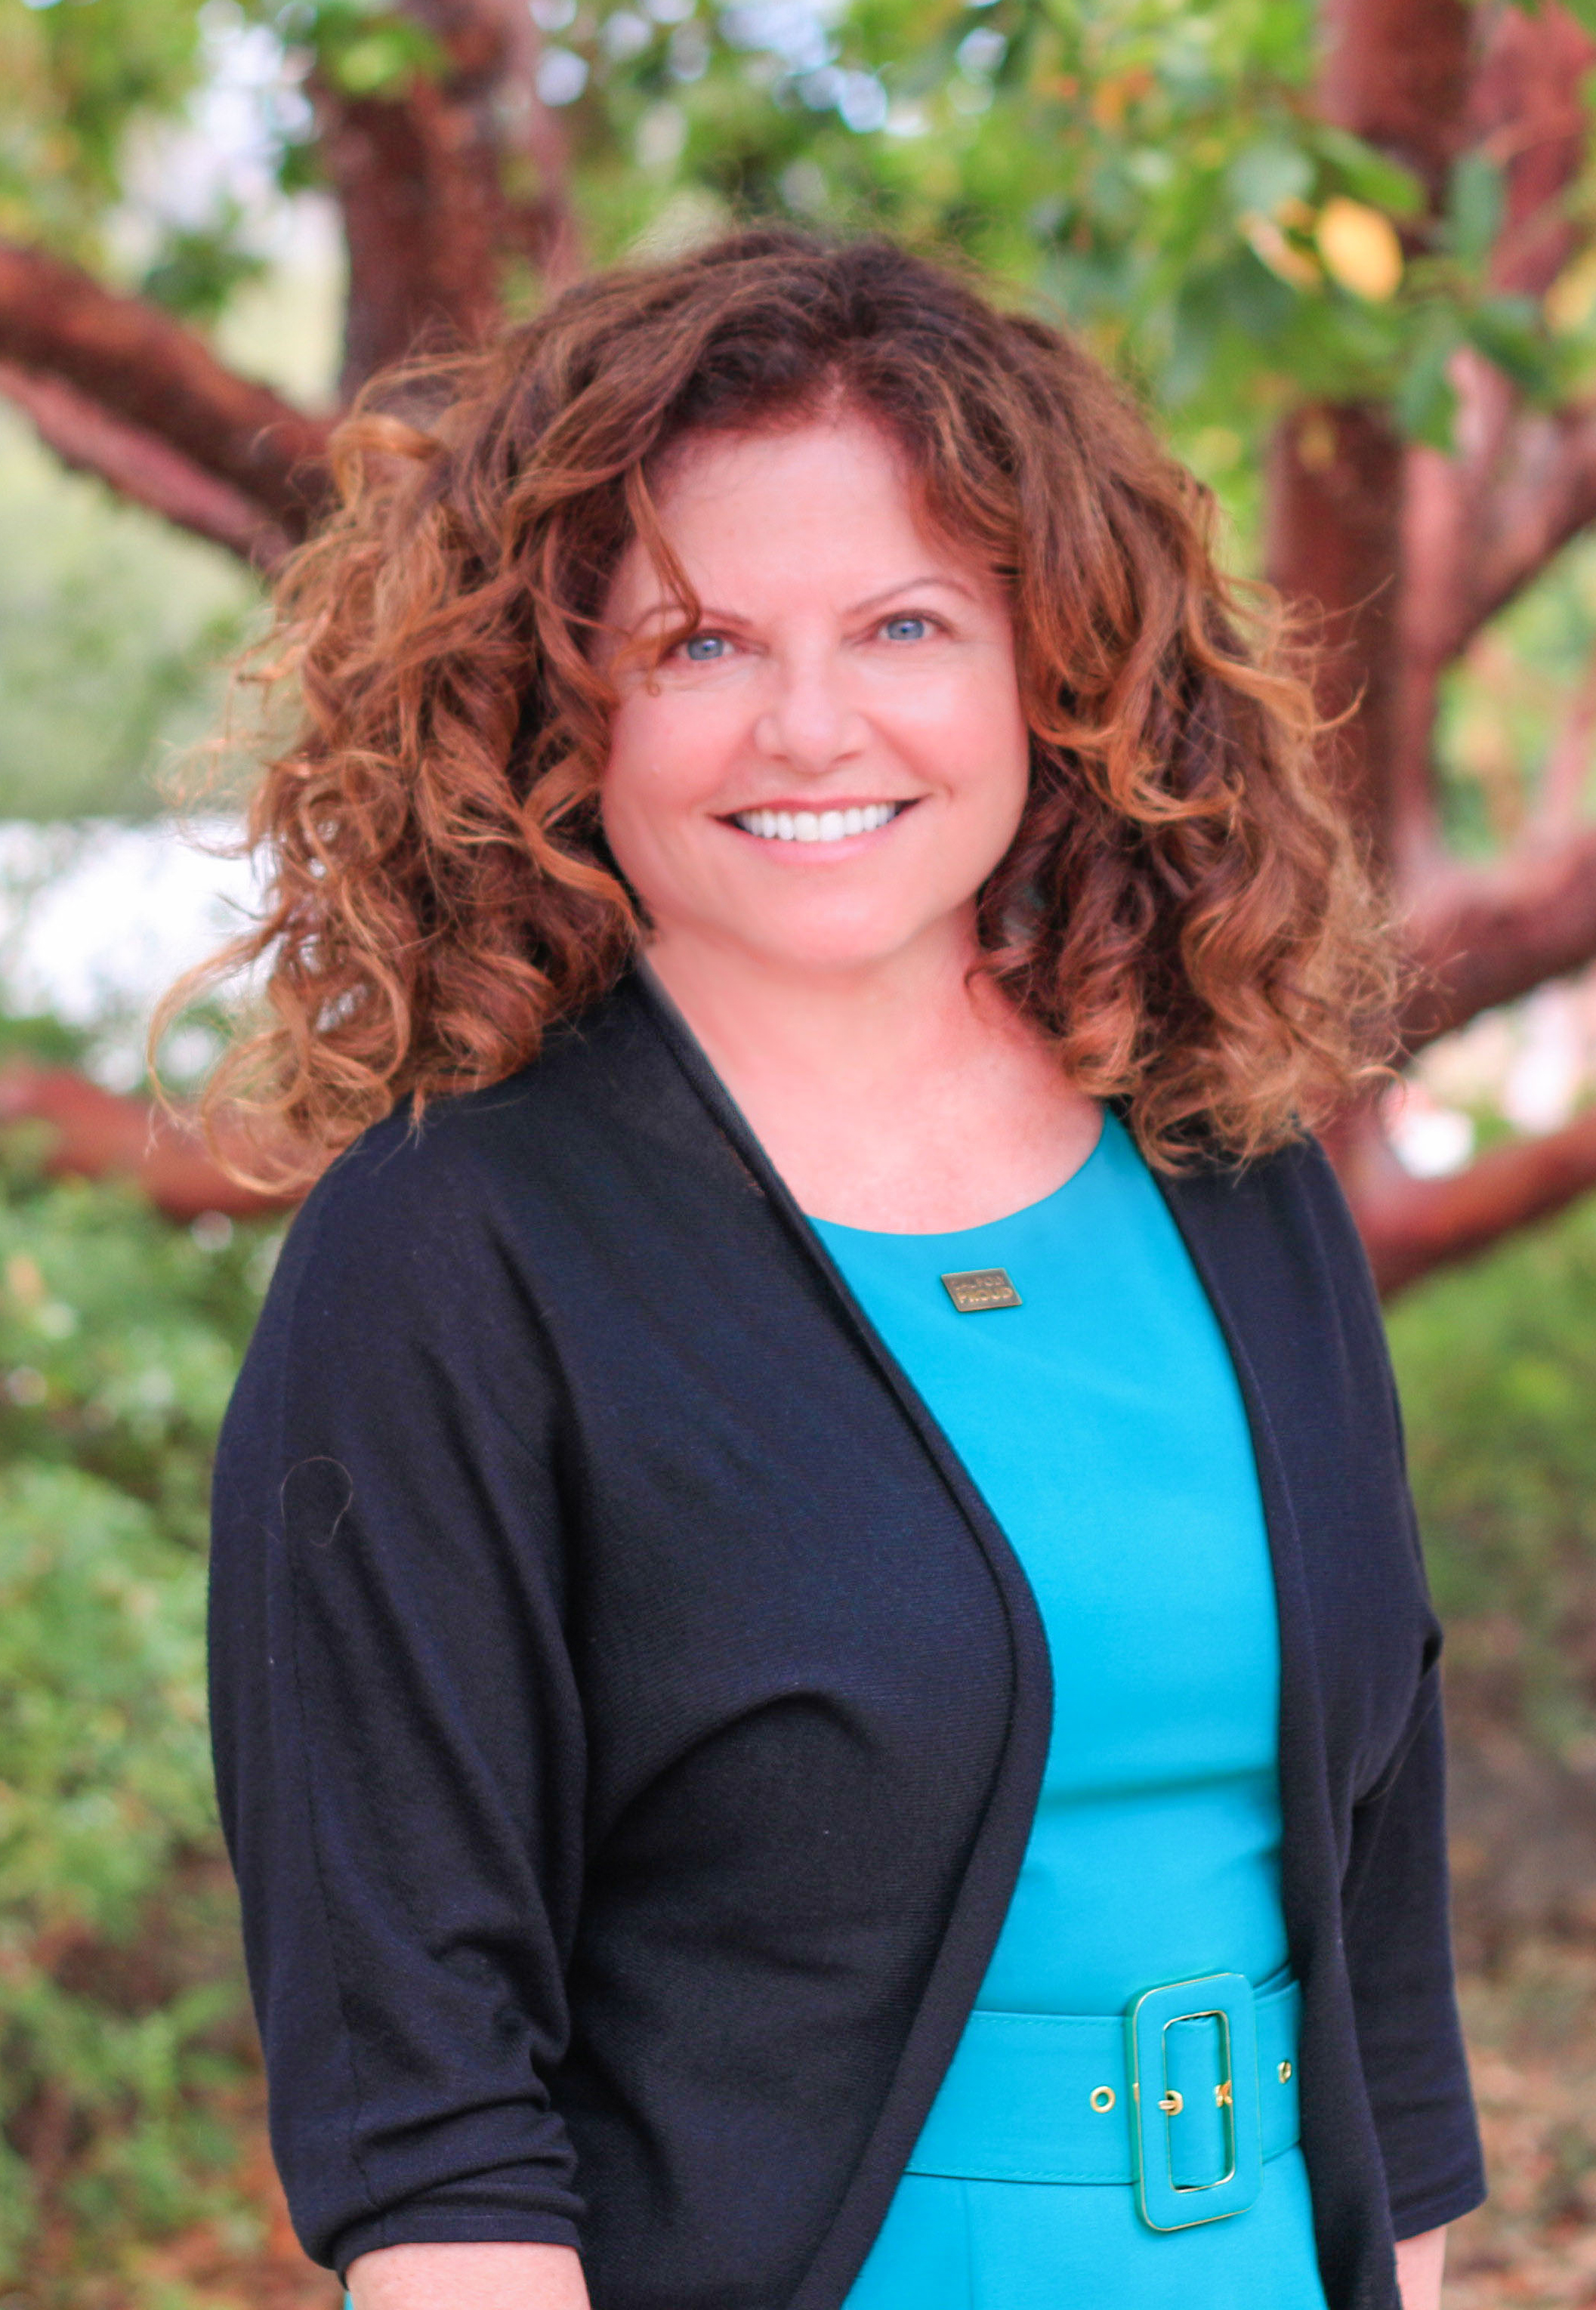 Clare O'Brian associate vice president for student affairs cal poly san luis obispo